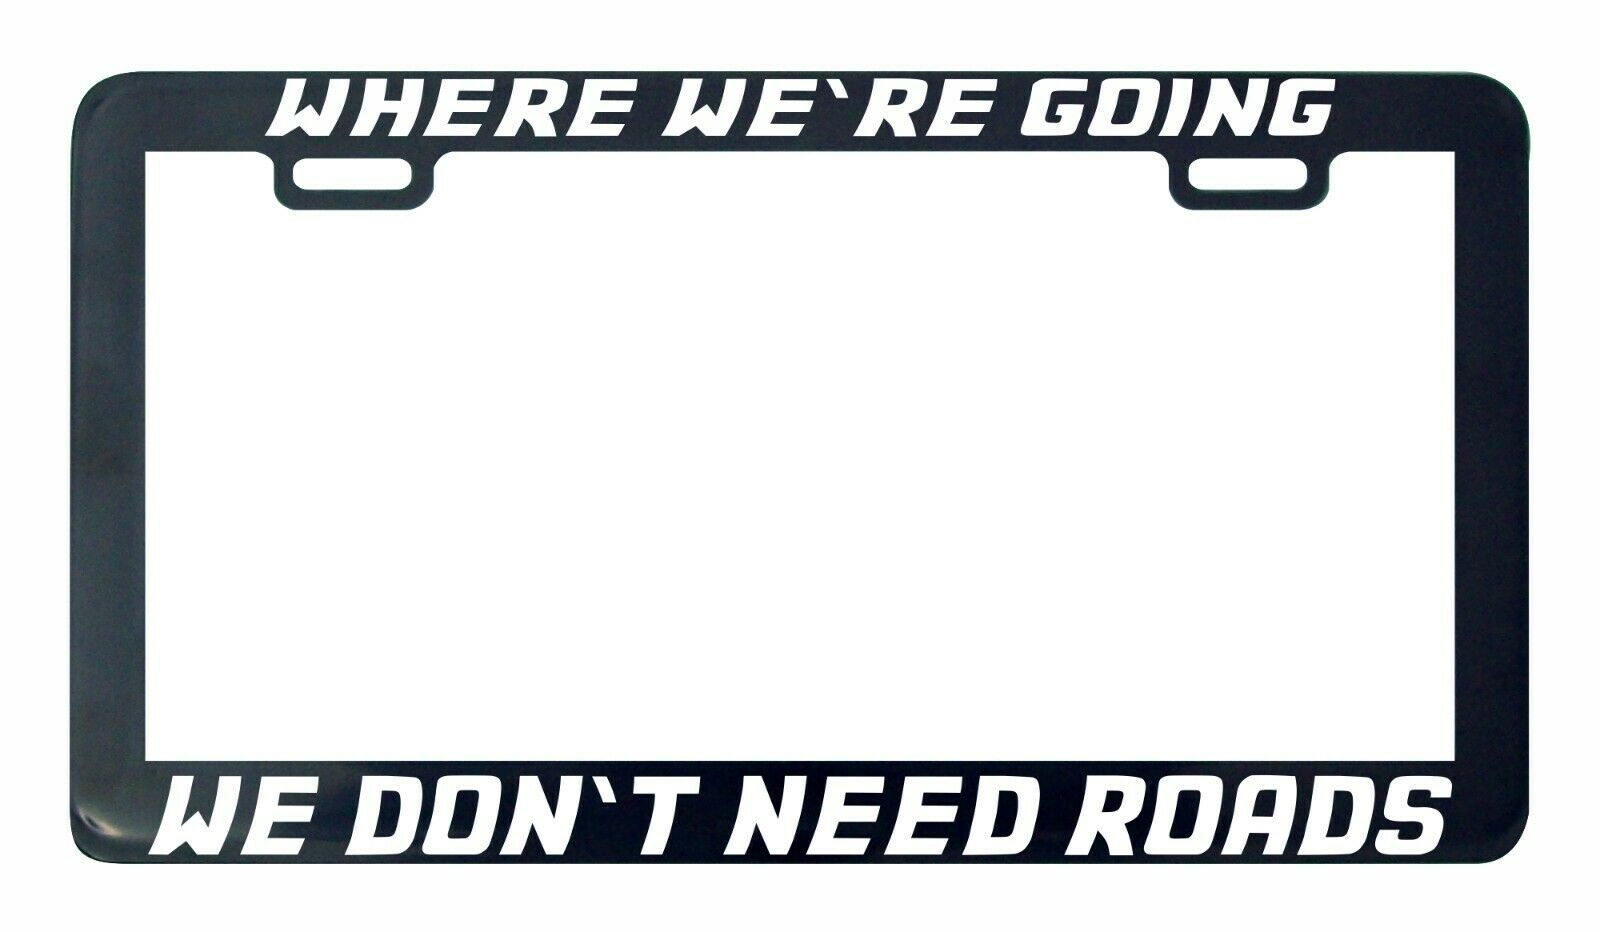 Primary image for Where we're going we don't need roads back to the license plate frame holder tag